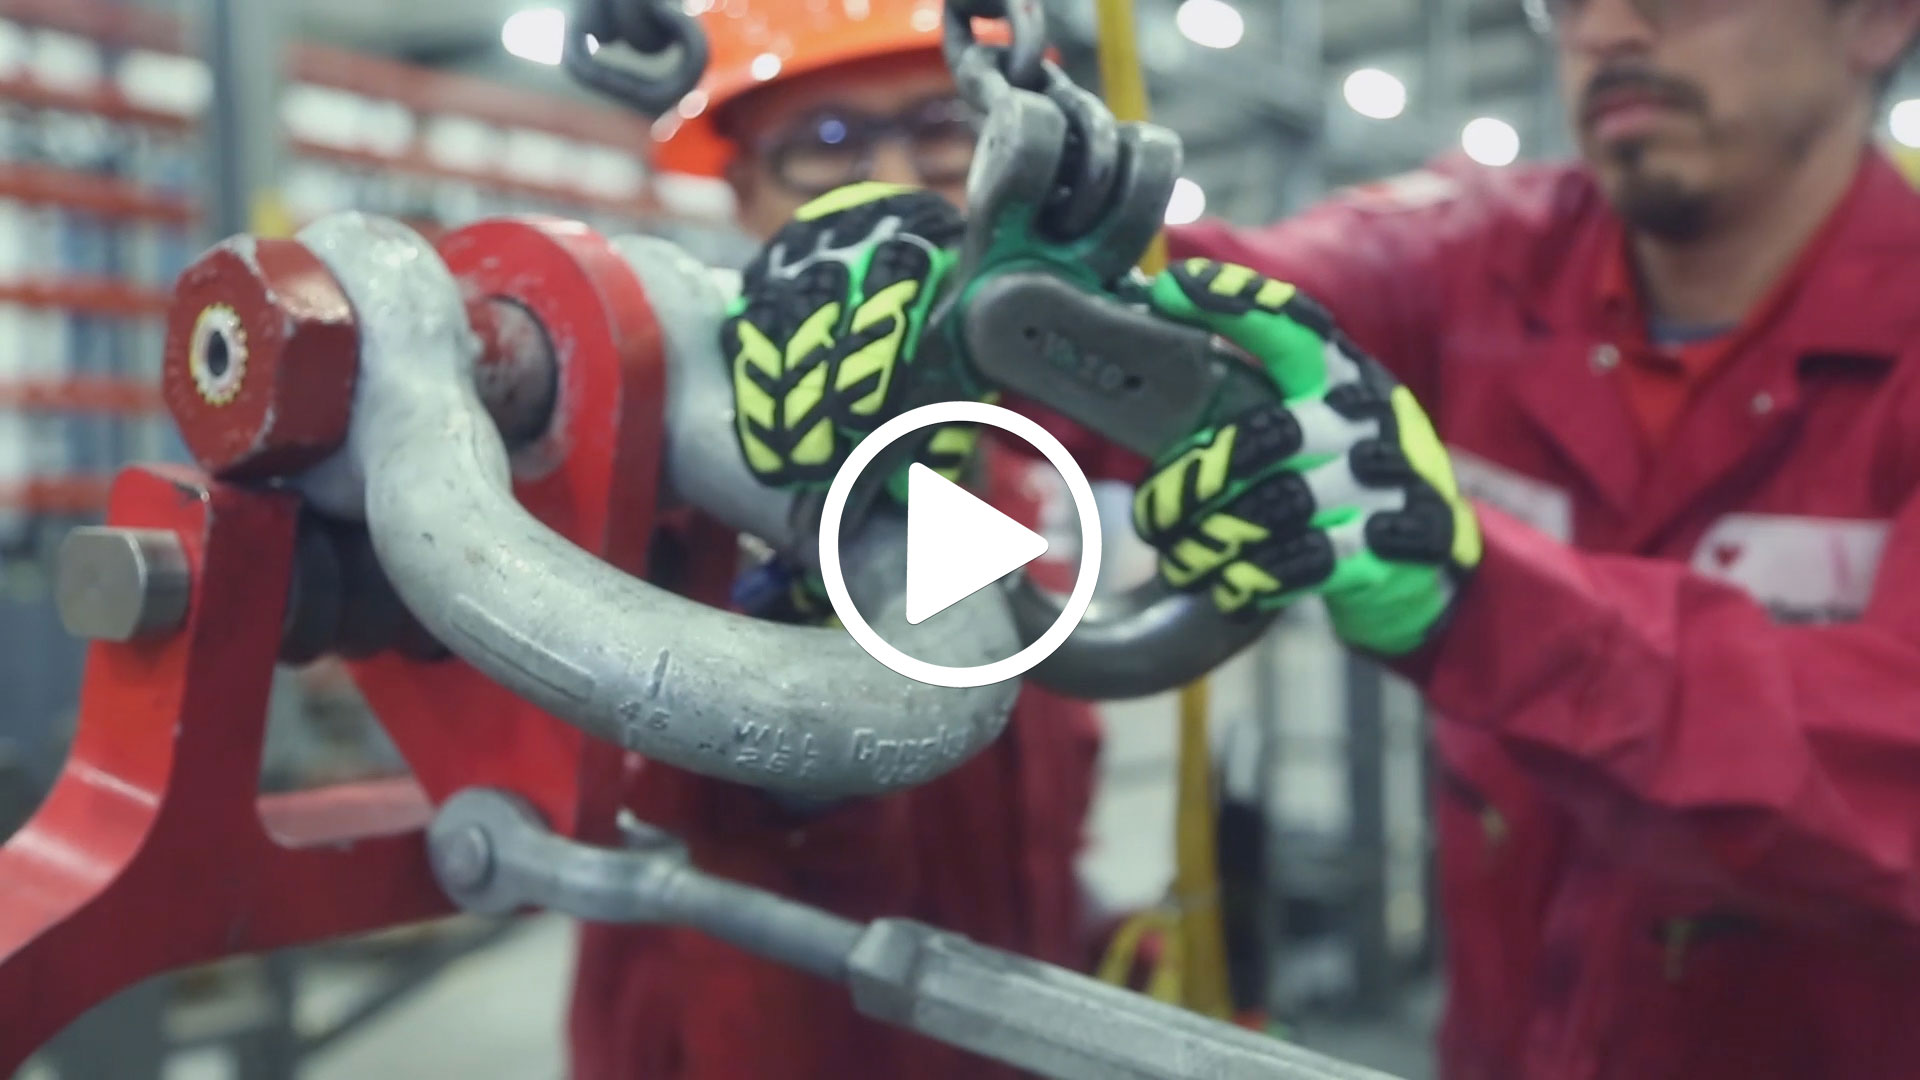 Watch our careers video for available job opening Field Technician in Midland, TX